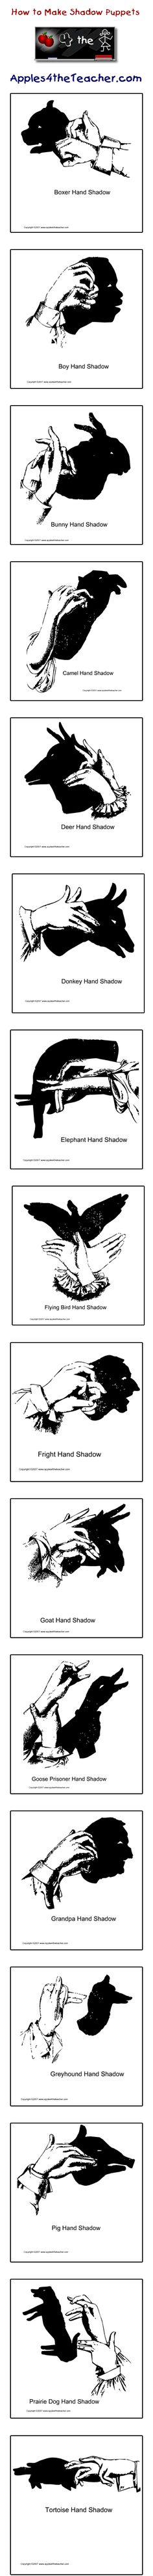 How to make different shadow puppets, Groundhog Day shadow puppets  http://www.apples4theteacher.com/holidays/ground-hog-day/hand-shadows/